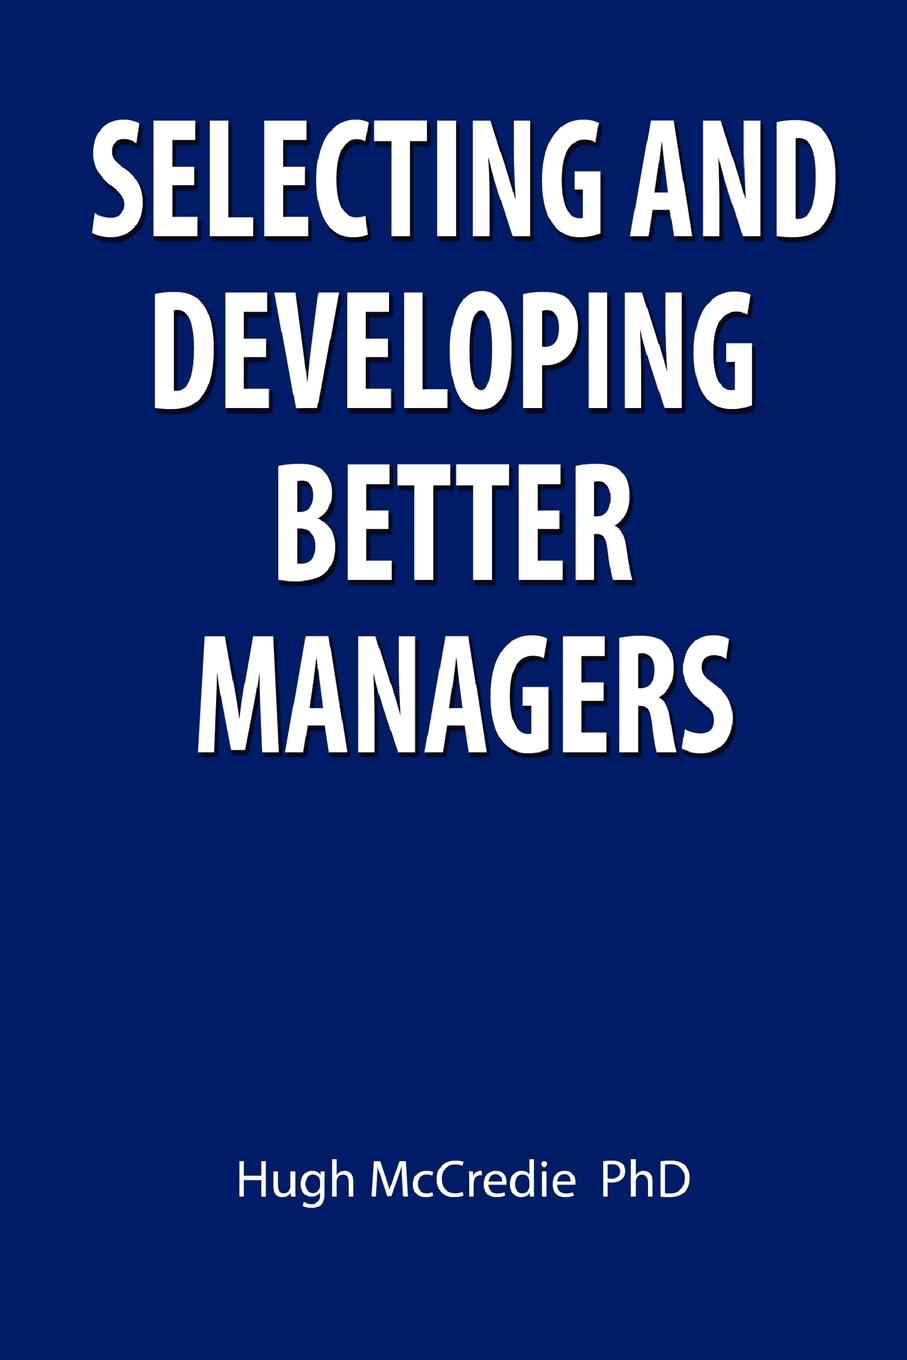 Selecting and developing better managers A personal attempt of an experienced researcher/practitioner...